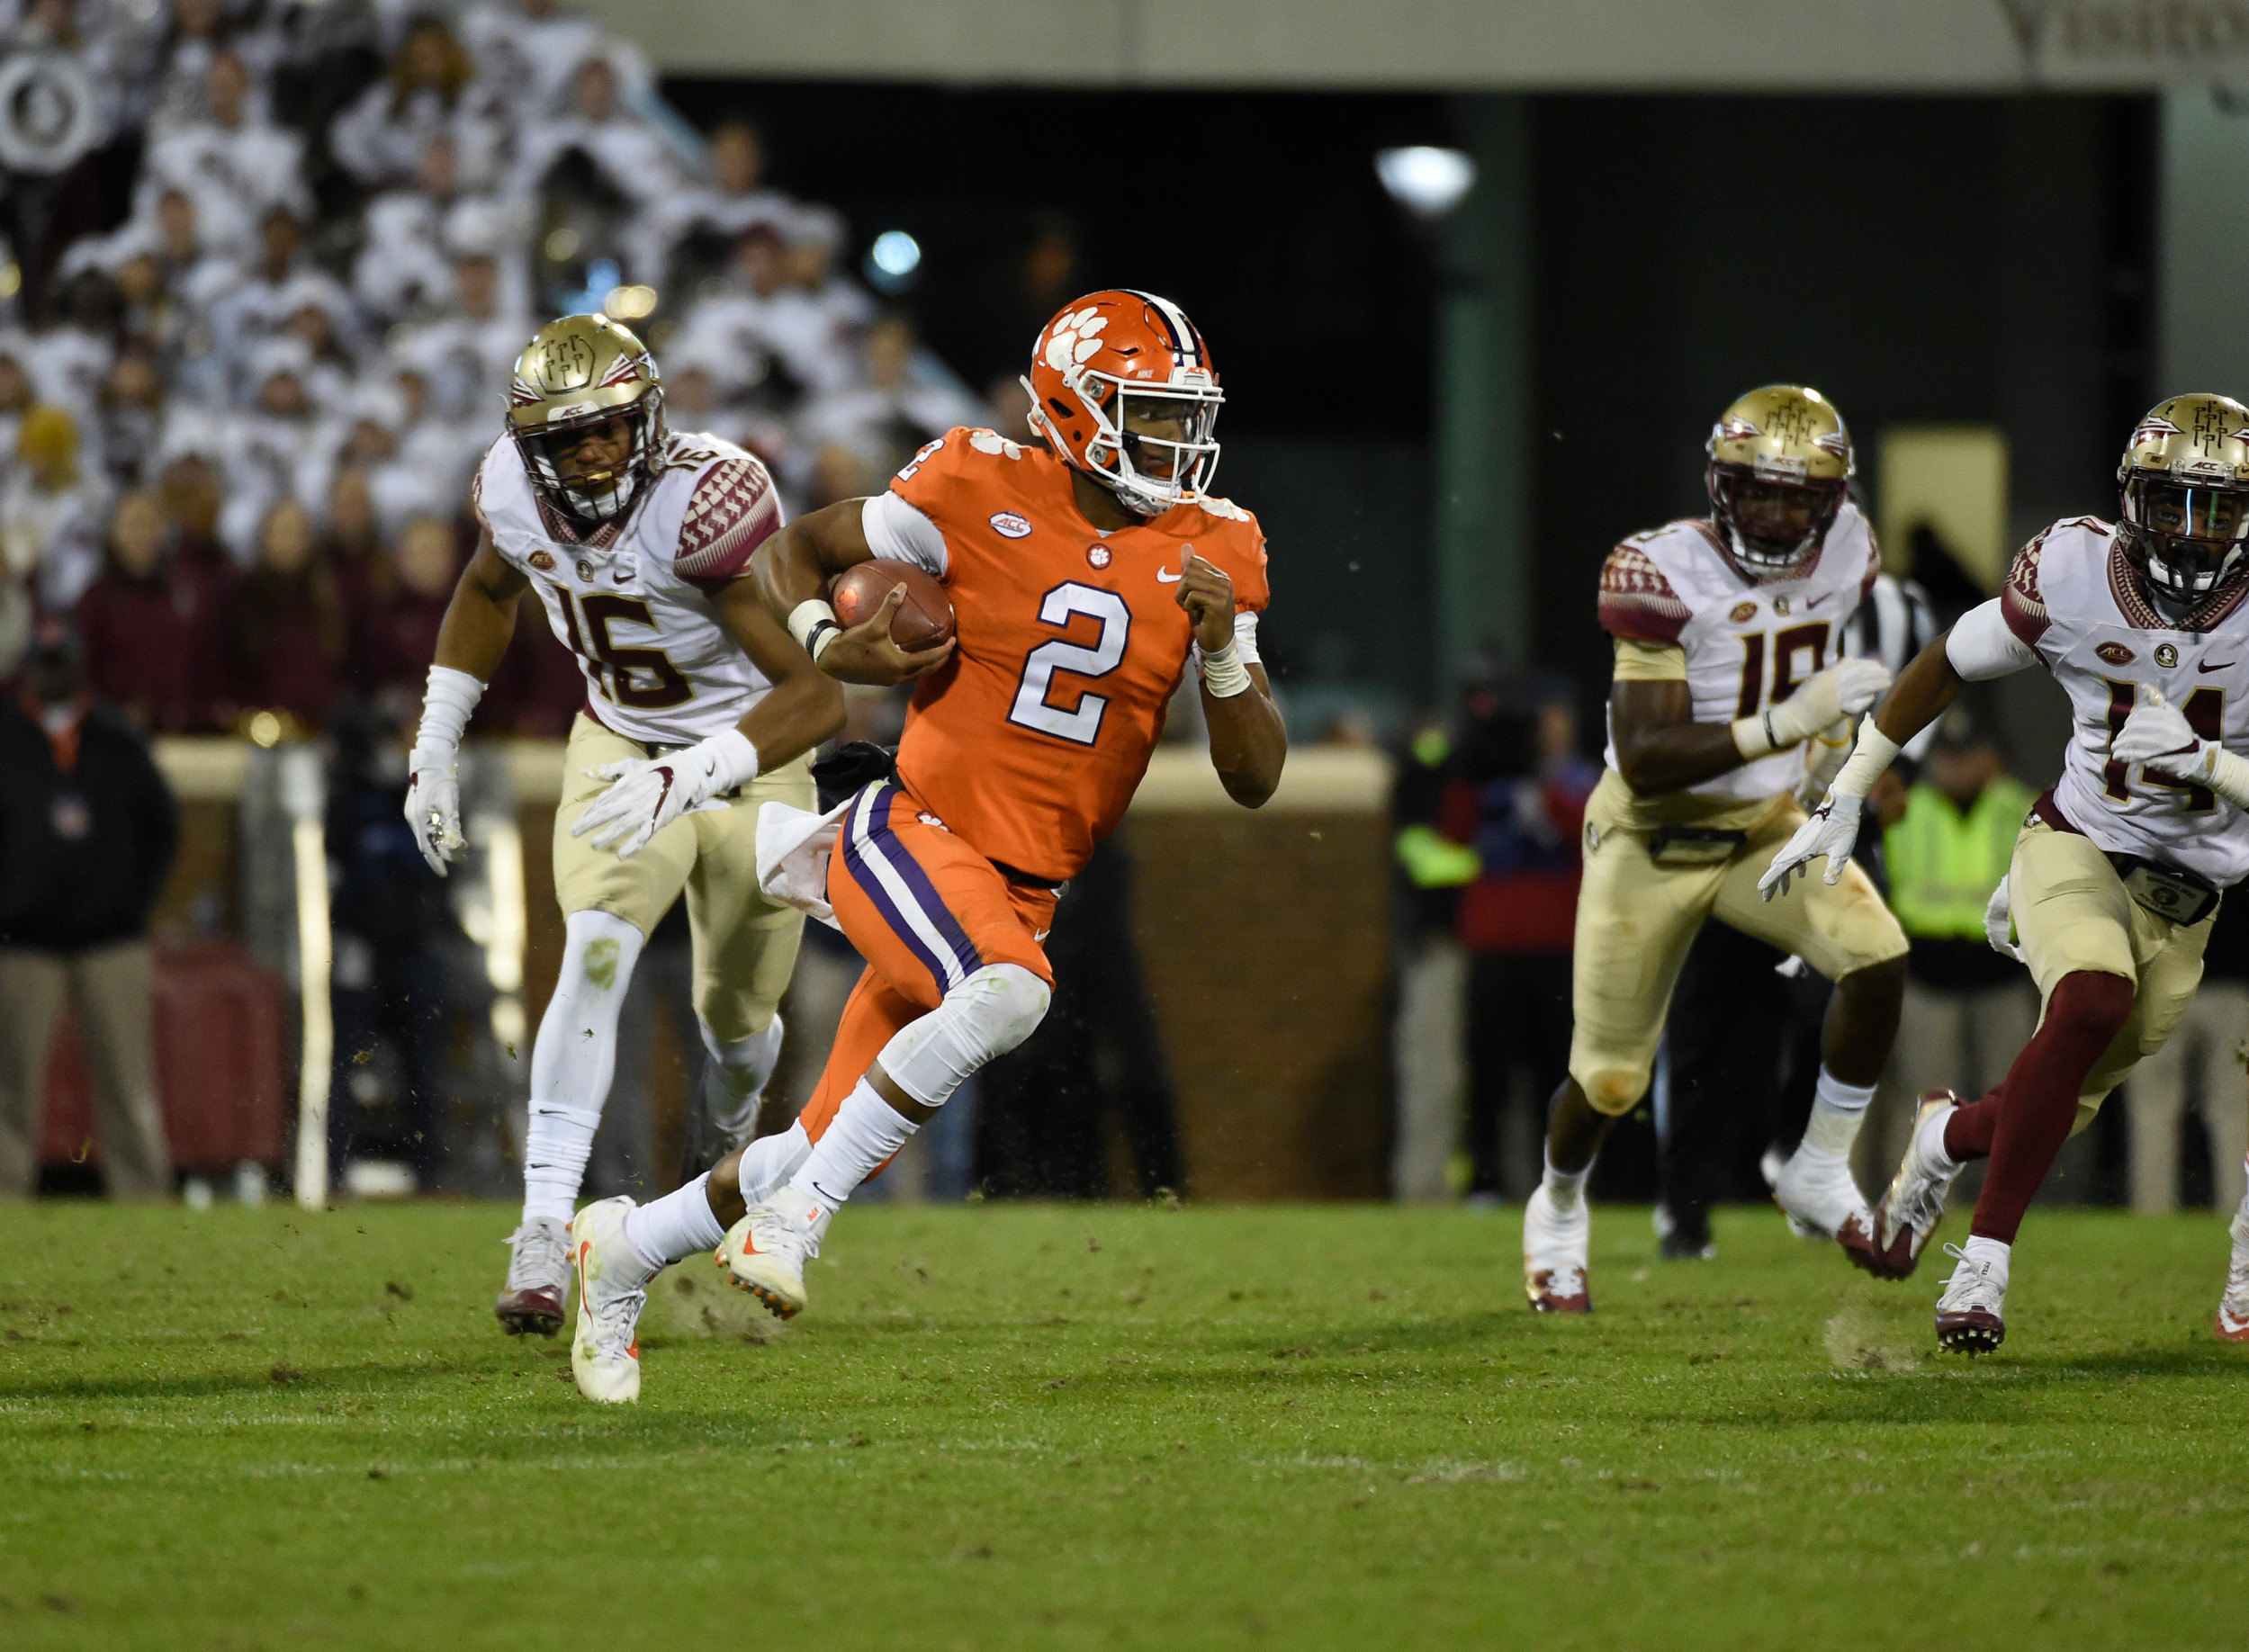 The Associated PressClemson quarterback Kelly Bryant (2) will be looking for more opportunities like this when the Tigers travel to Columbia on Saturday to face rival South Carolina at 7:30 p.m. Clemson needs a win to keep alive its hopes of defending its national title.